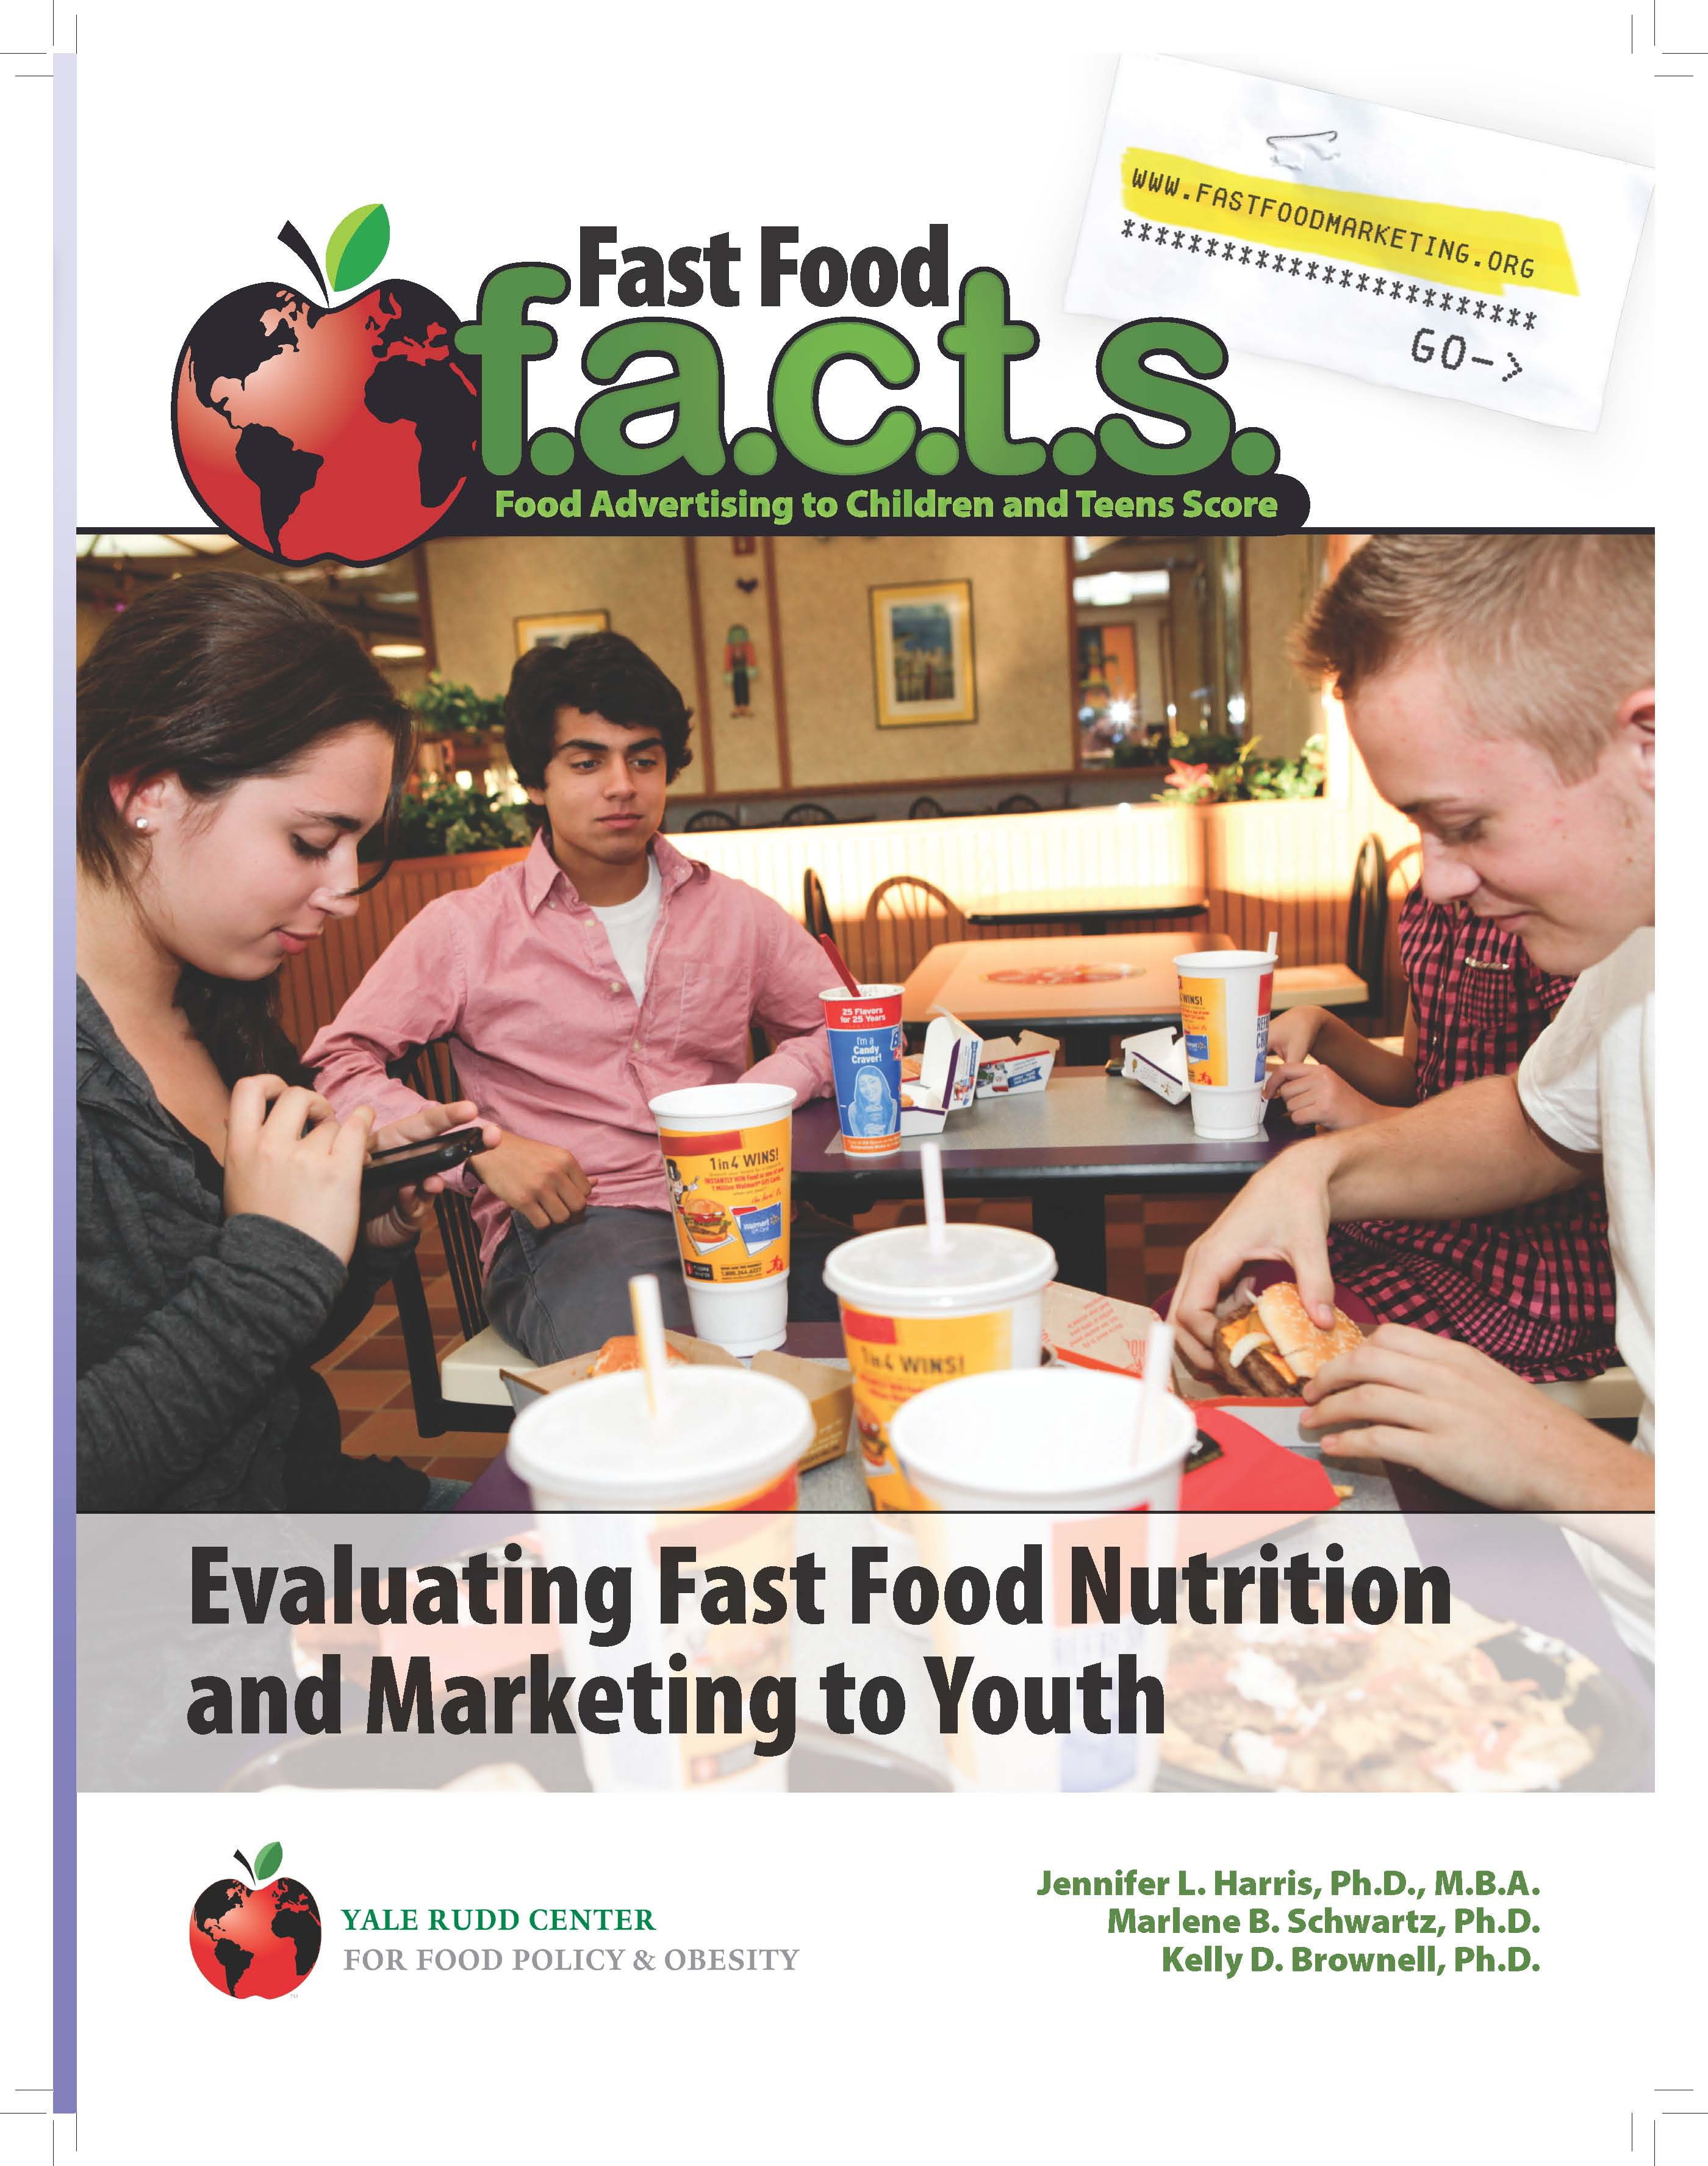 Evaluating Fast Food Nutrition